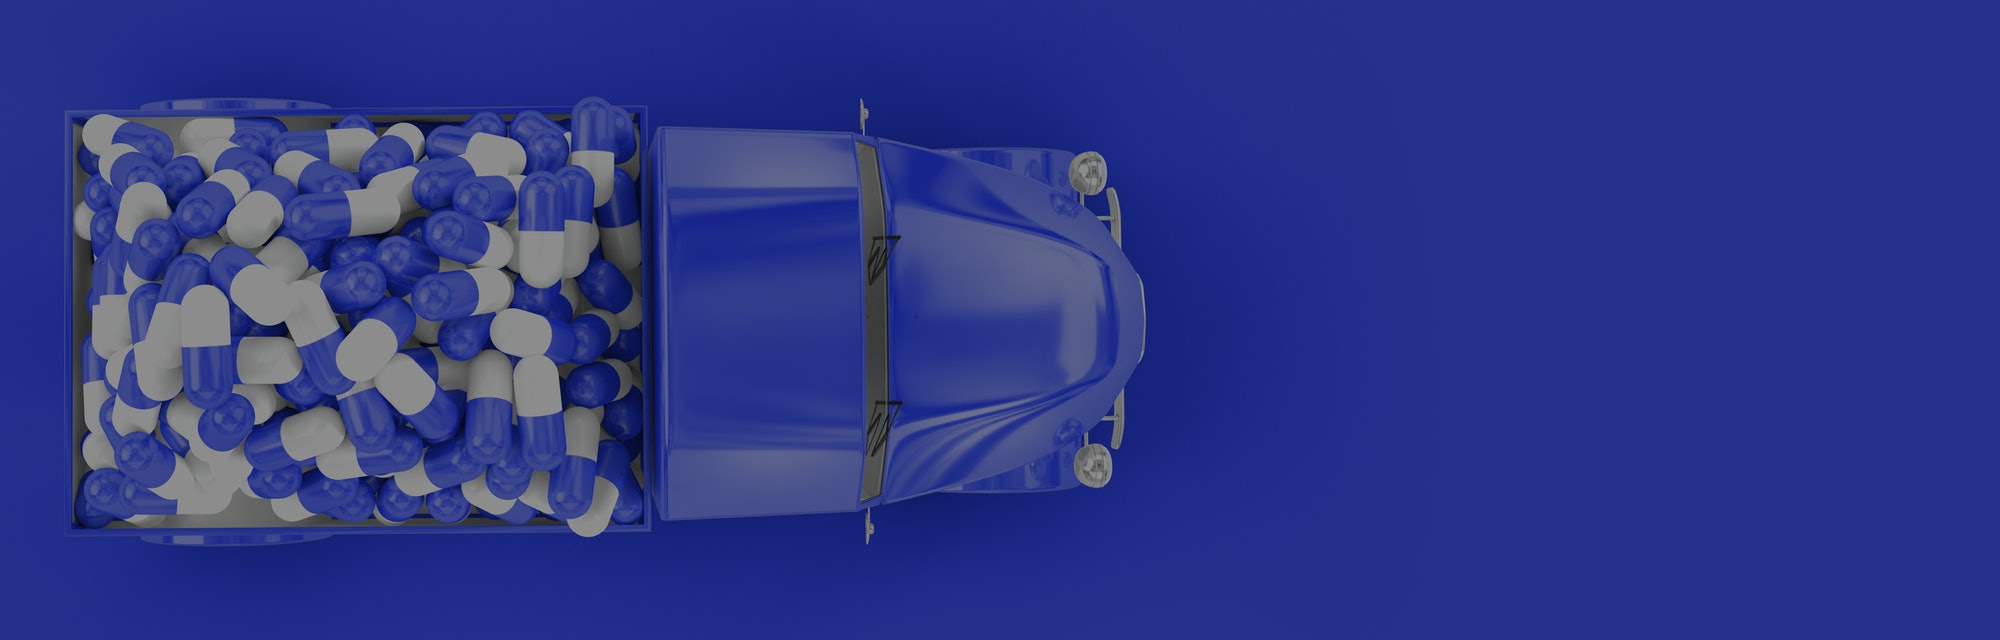 The vehicle from which on-the-go are scattered pills/ Concept art on the theme of drug delivery/ 3D illustration